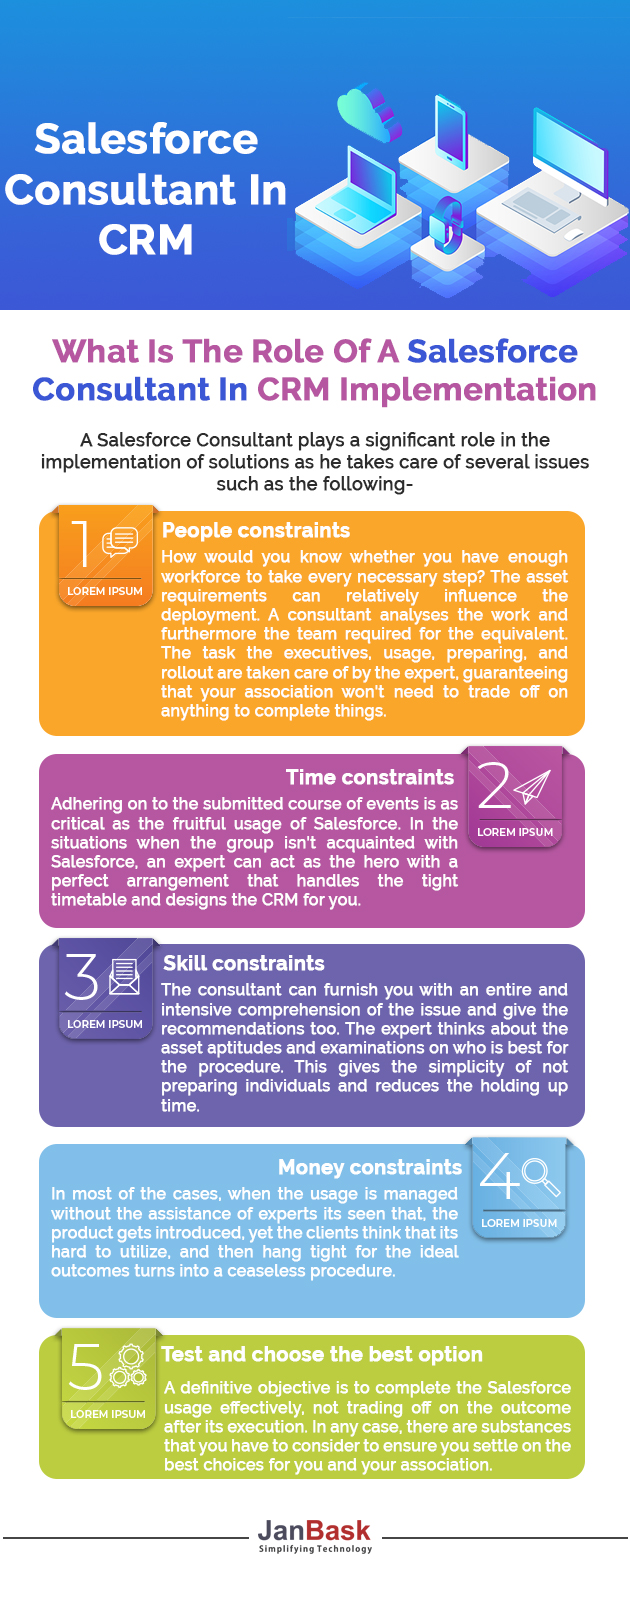 Infographic What Is The Role Of A Salesforce Consultant In CRM Implementation